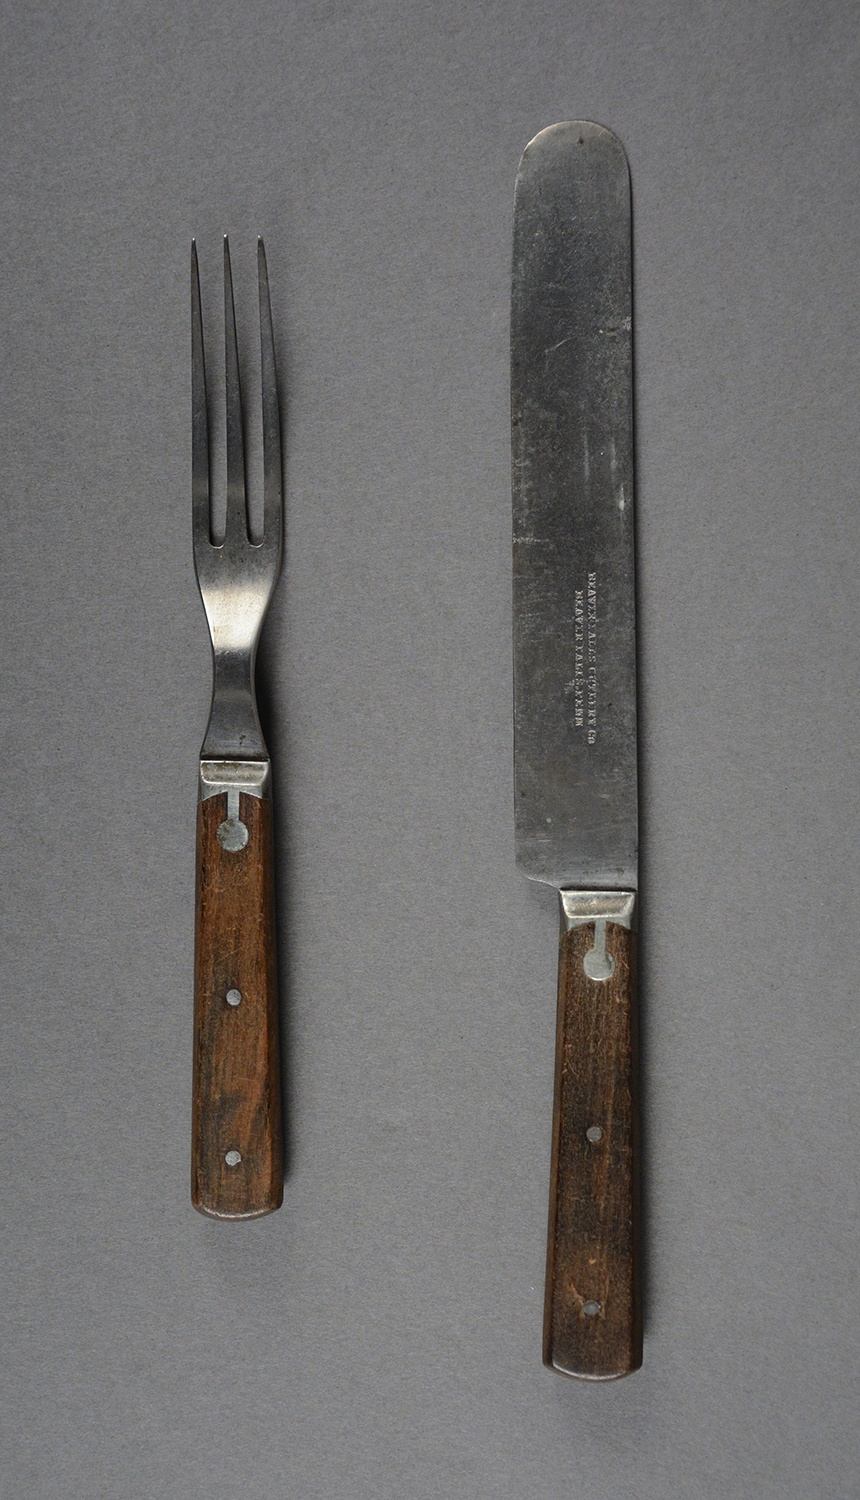 Flatware made by the Beaver Falls Cutlery Company, c. 1875. Gift of JoAnne S. Autenreith, 2011.49.4 a, b, Heinz History Center Museum Collections.